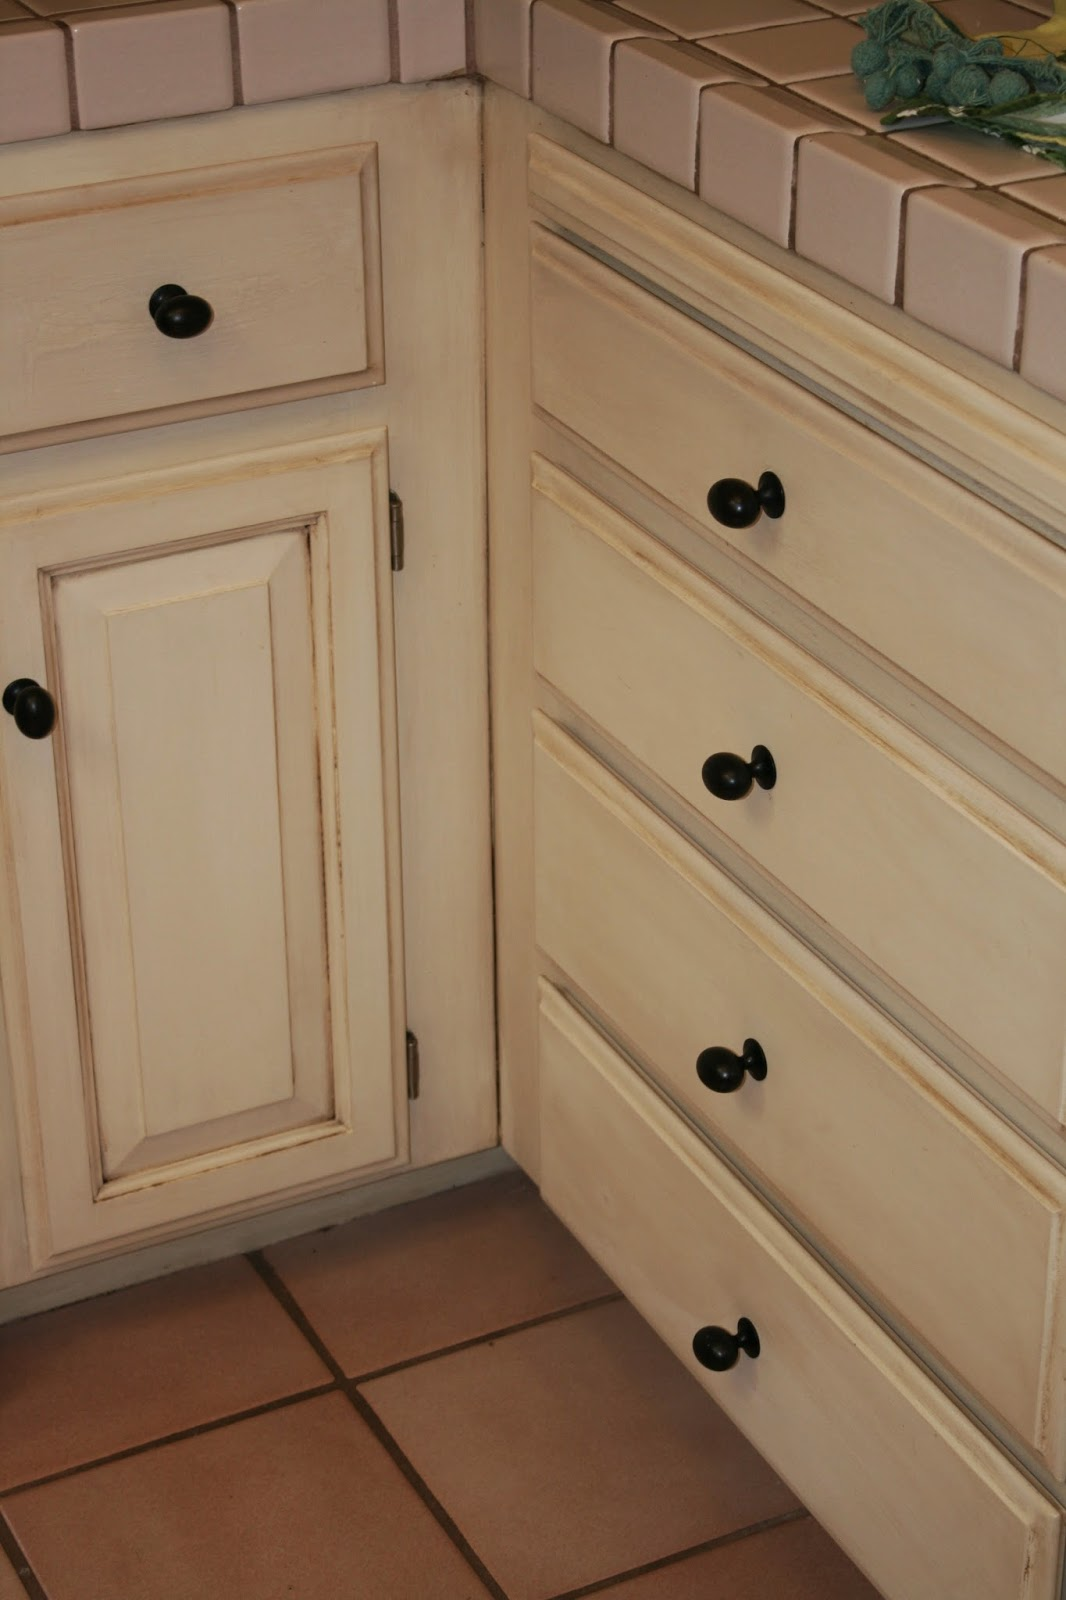 What To Clean Grease Off Kitchen Cabinets How To Clean Grease Off Kitchen Cabinets